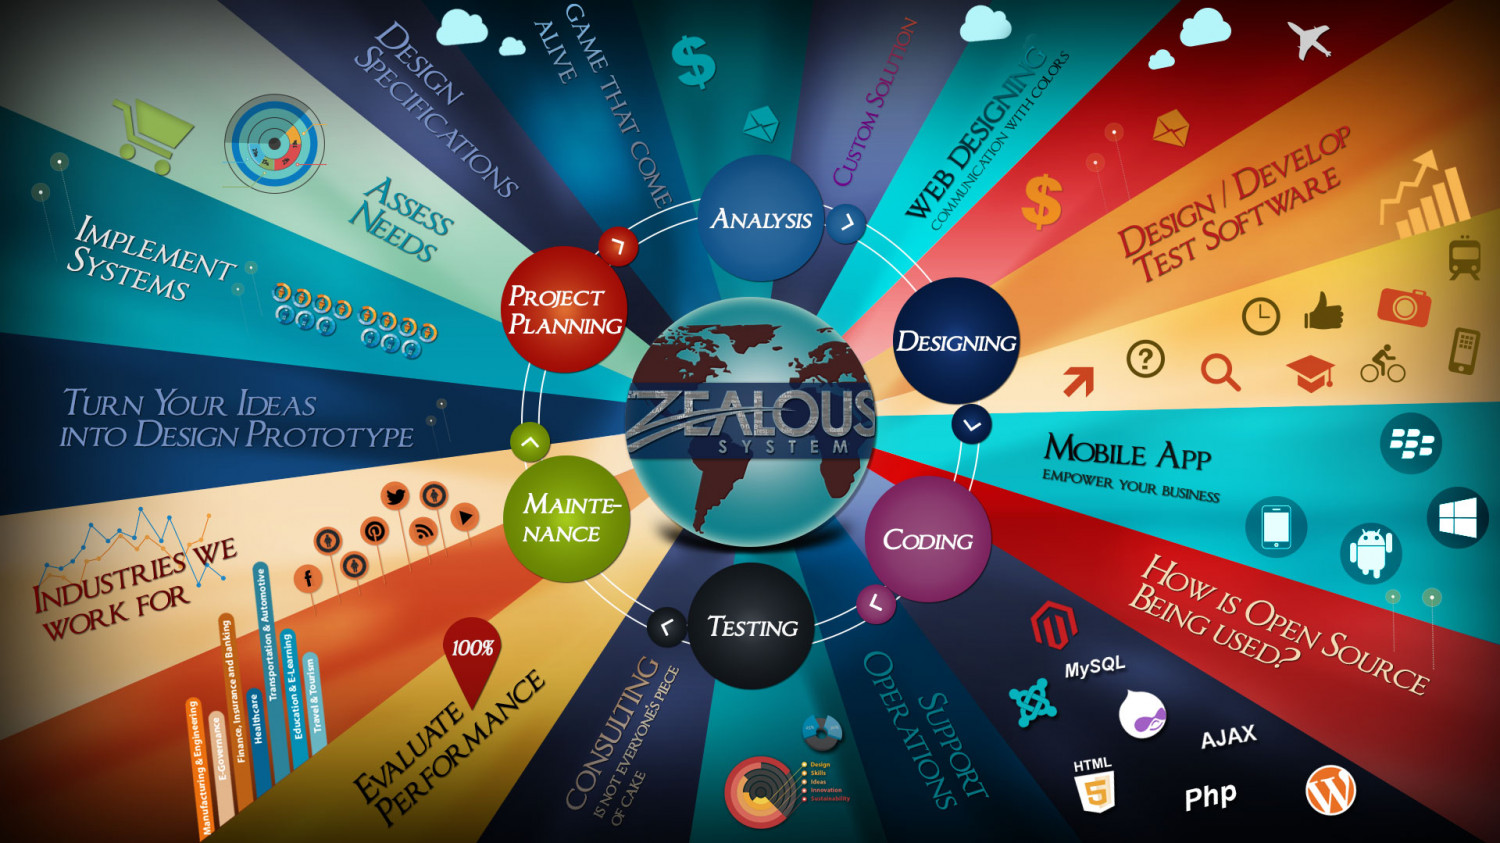 Zealous System - Web and Mobile Development Company Infographic